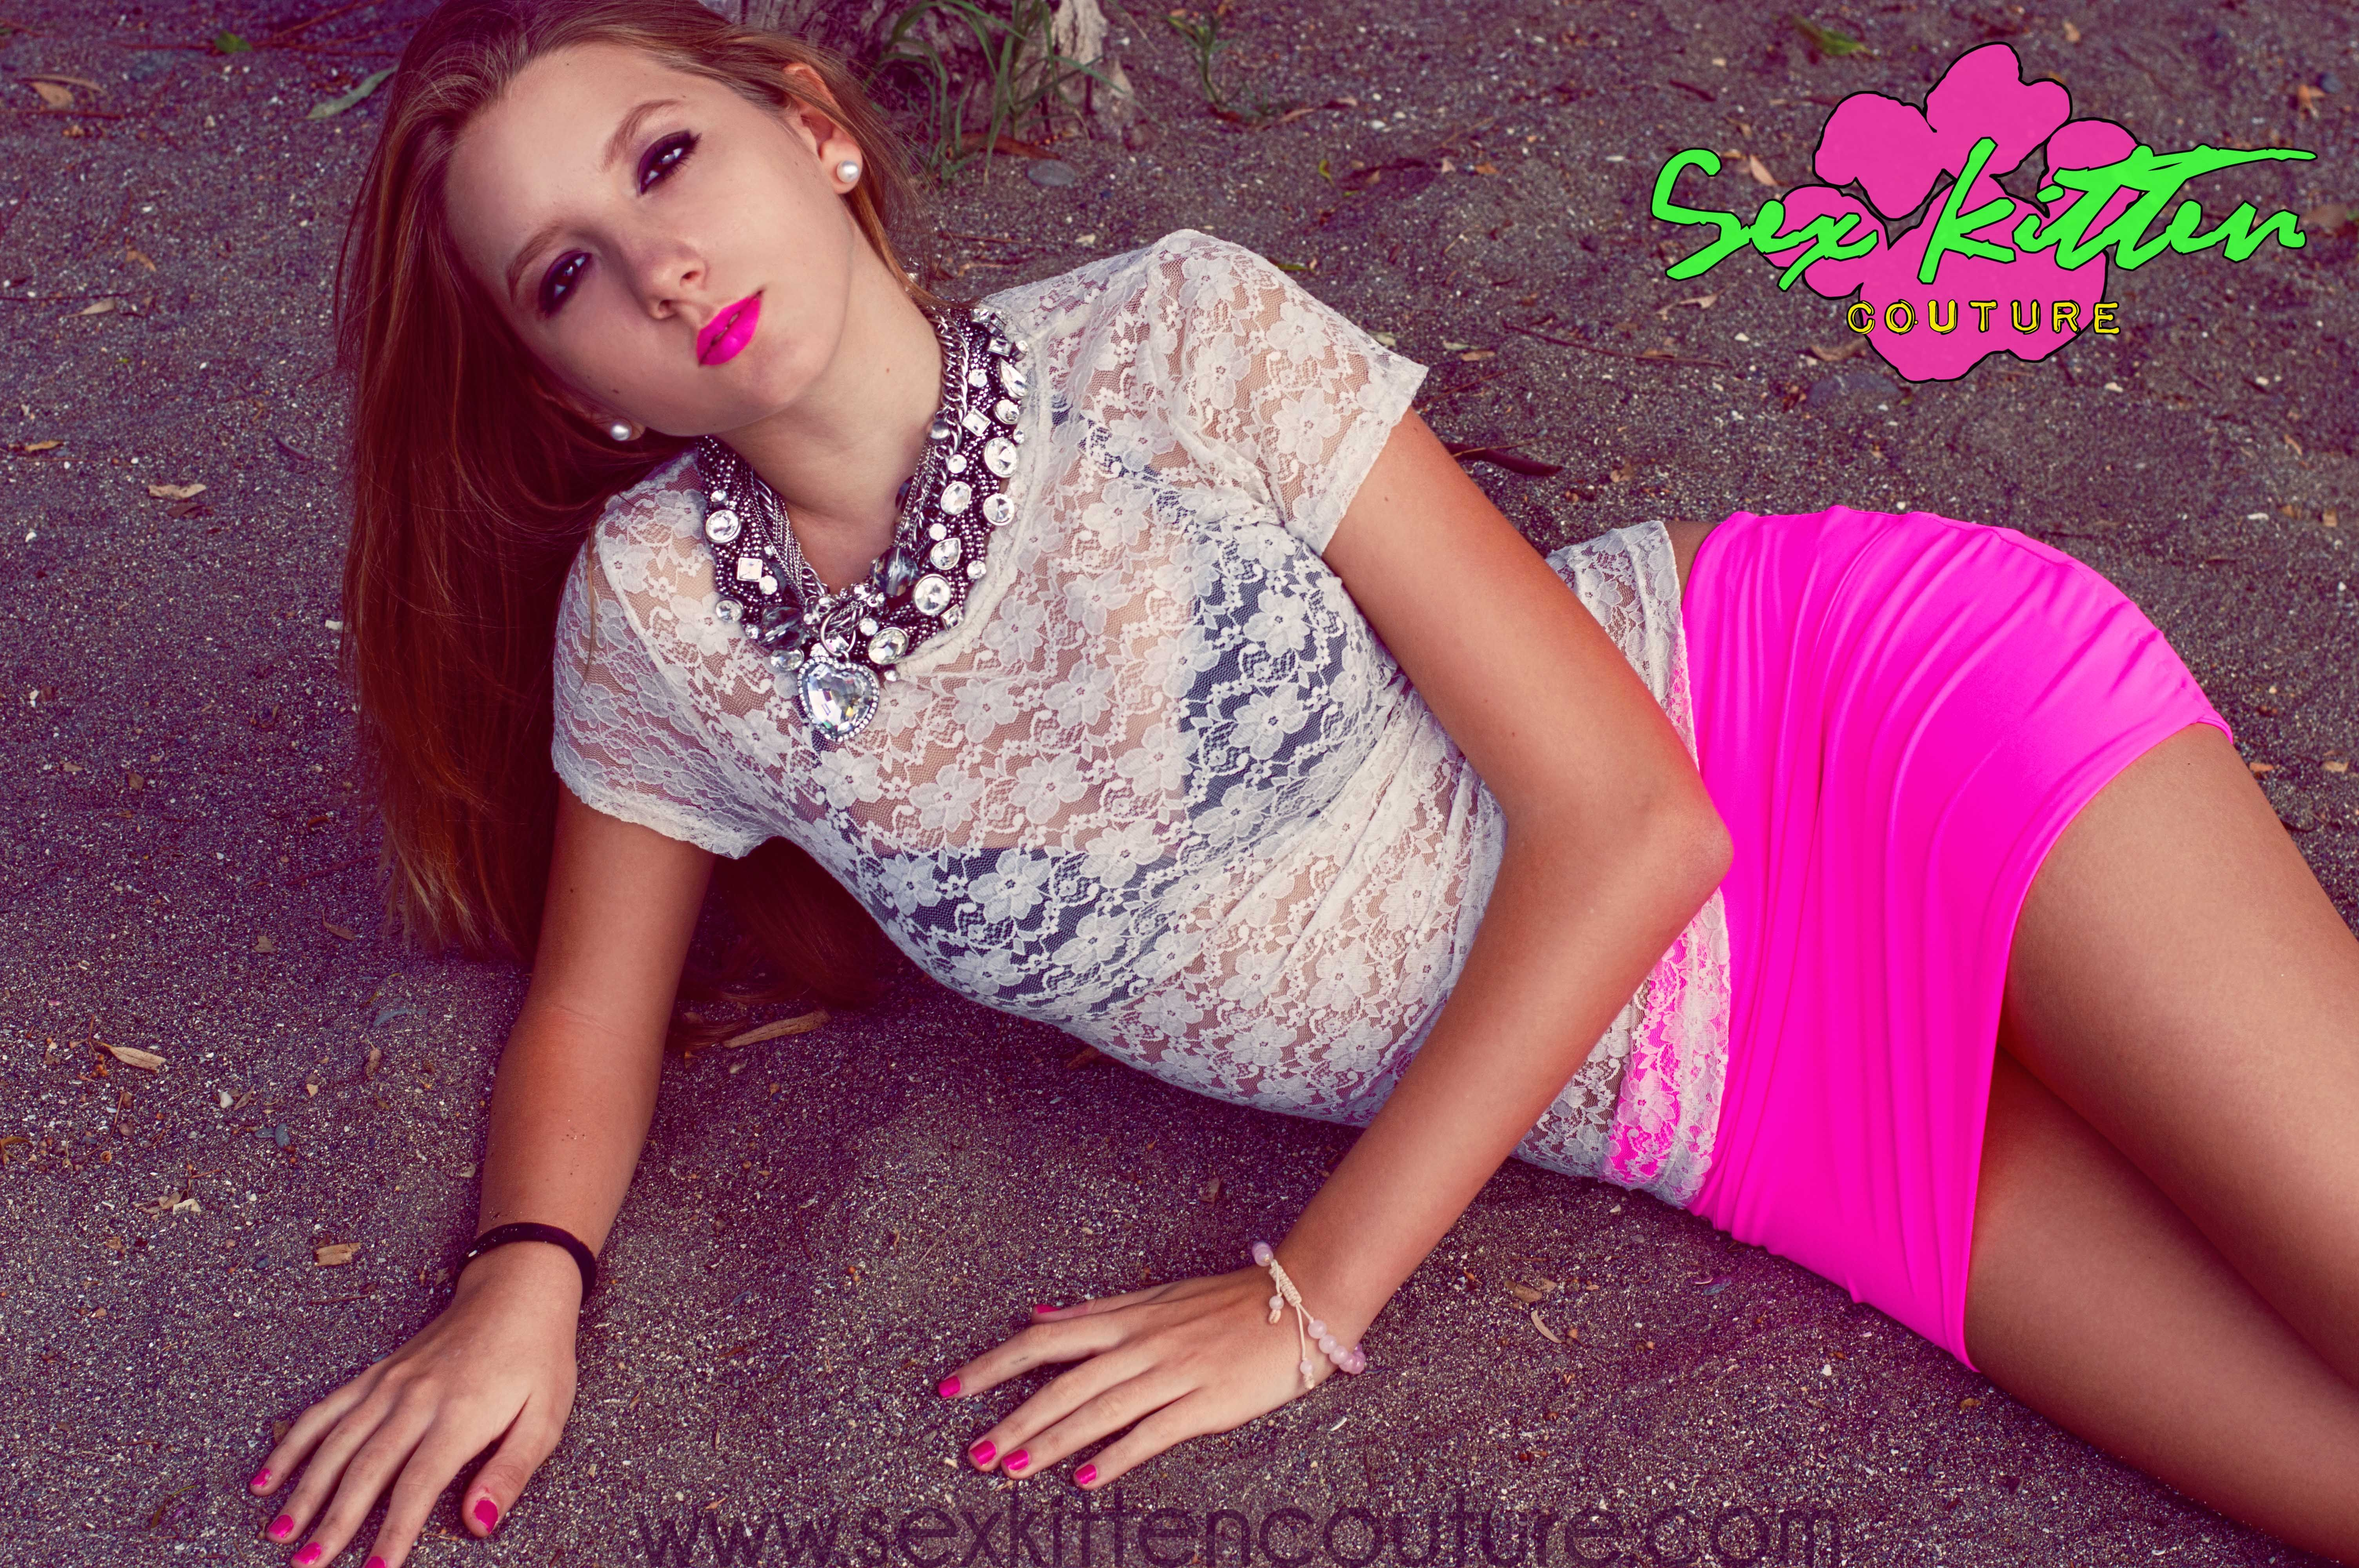 'WildFire' LOOKBOOK by Sex Kitten Couture featuring the gorgeous Celine. Click to buy our Neon Pink Mini Skirt $48.00 : http://www.sexkittencouture.com/skirts/28-neon-pink-mini-skirt.html #neon #pink #miniskirt #beach #summer #editorial #vogue #photograhy #fashion